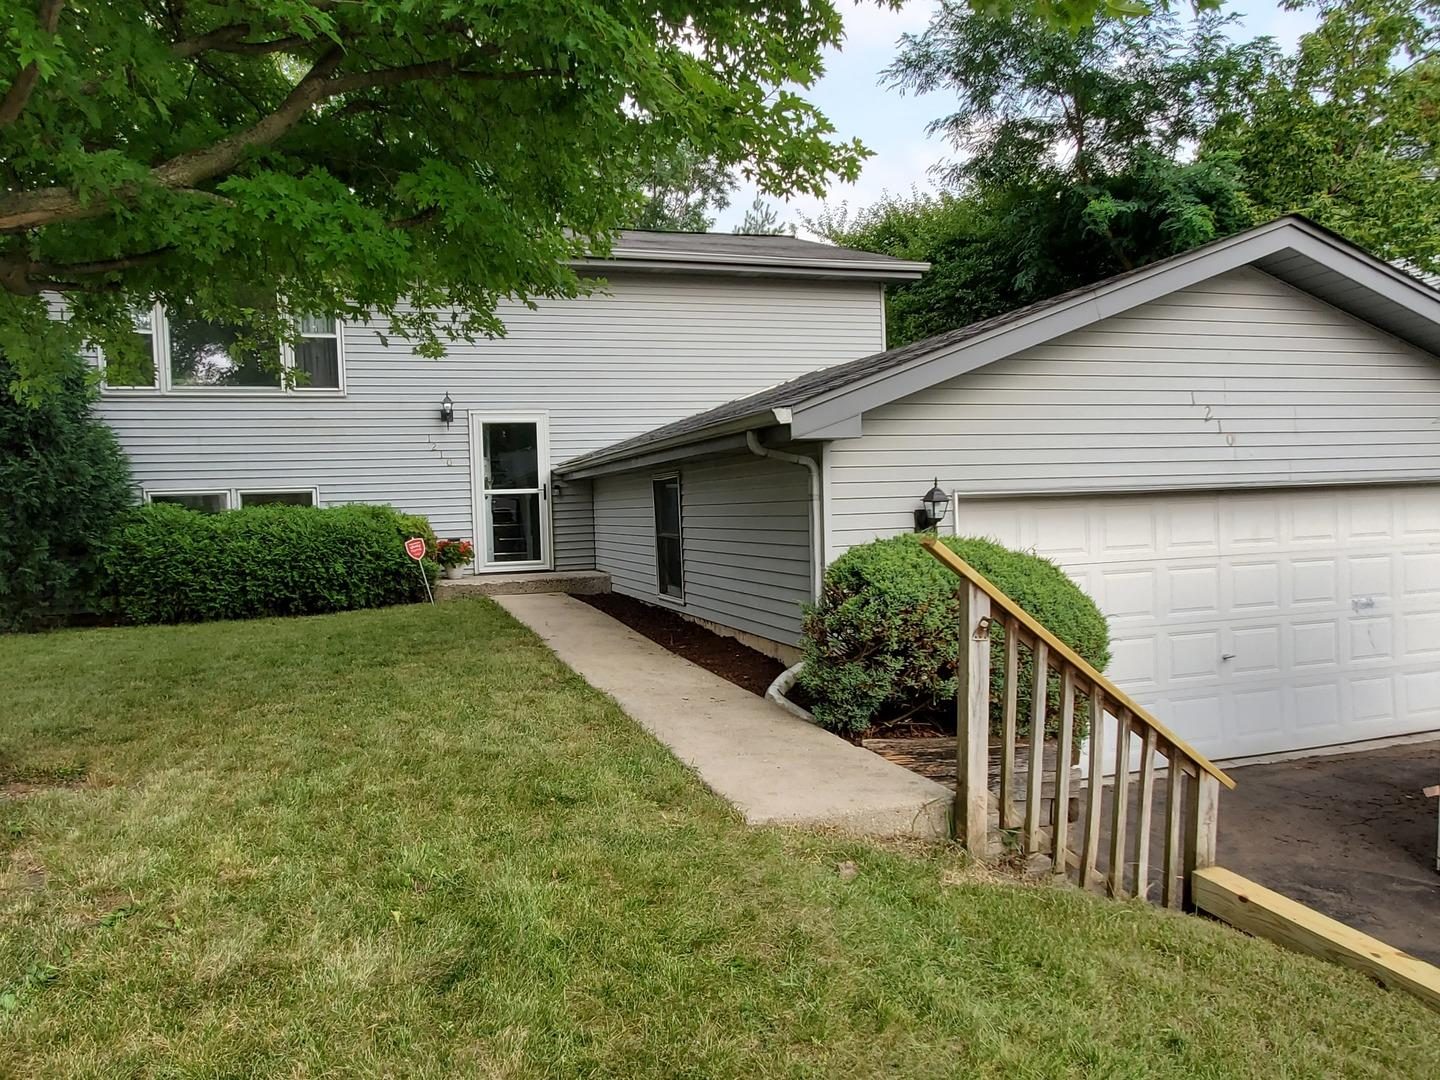 1210 SYCAMORE Street, Lake in the Hills, IL 60156 - #: 11164141